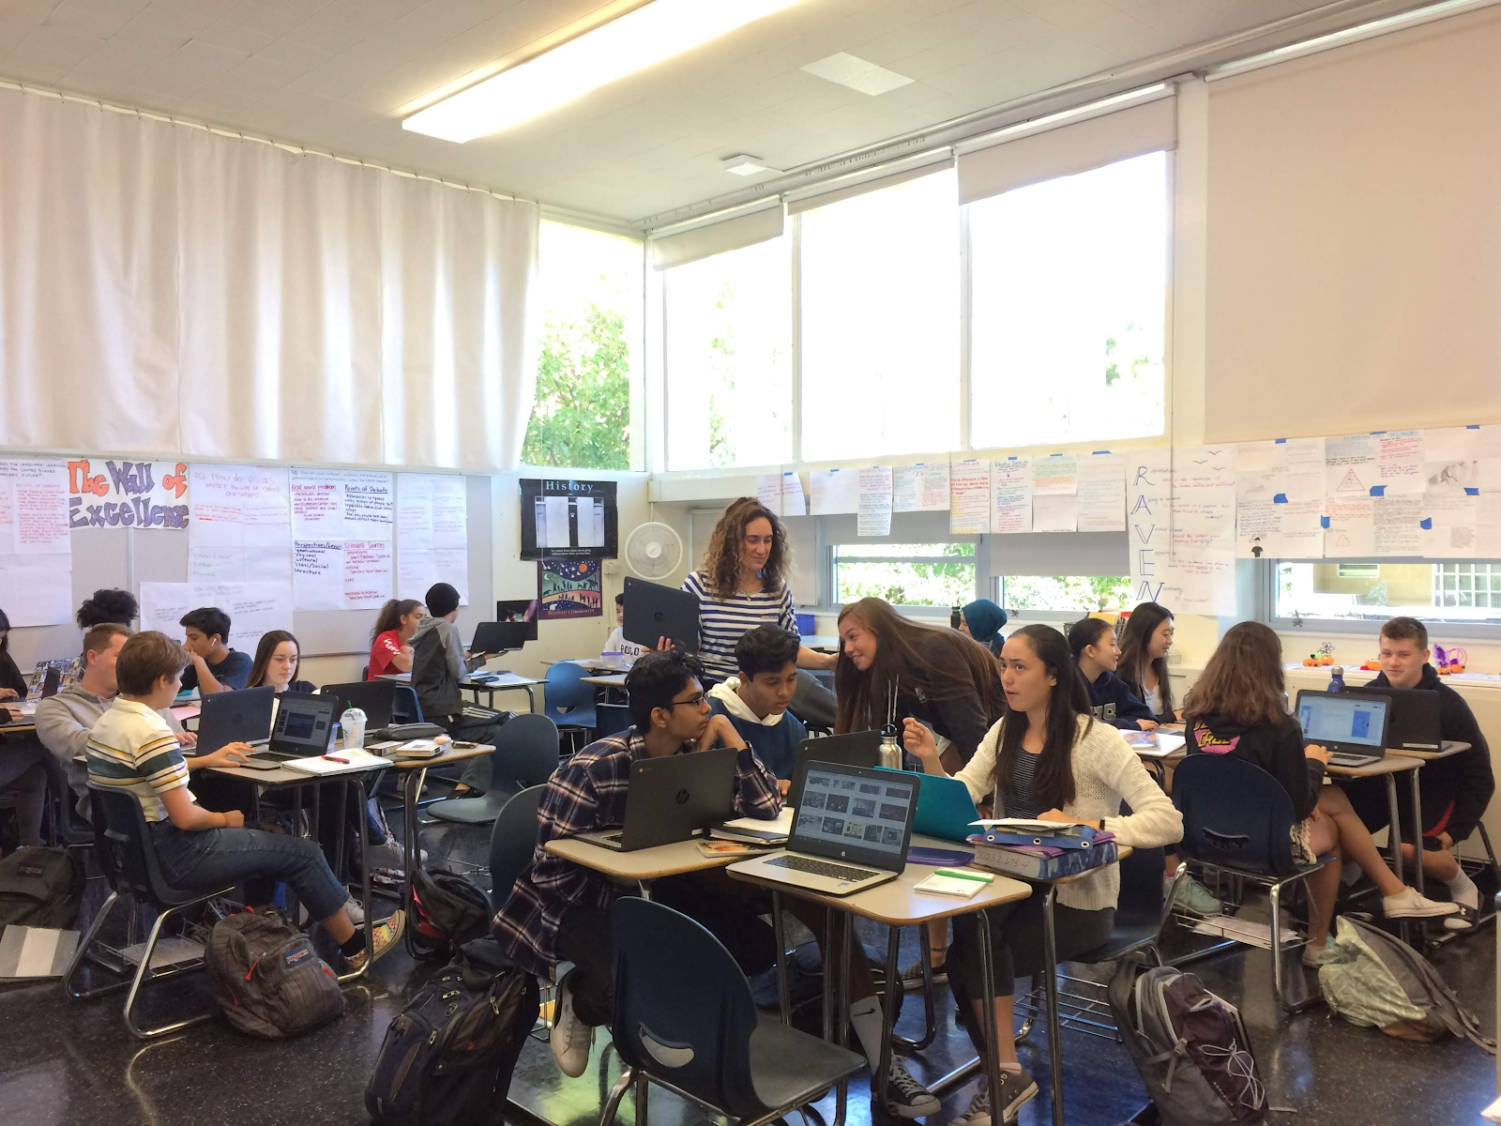 Cindy Shusterman supervises her AP Seminar class currently engaged in group work.